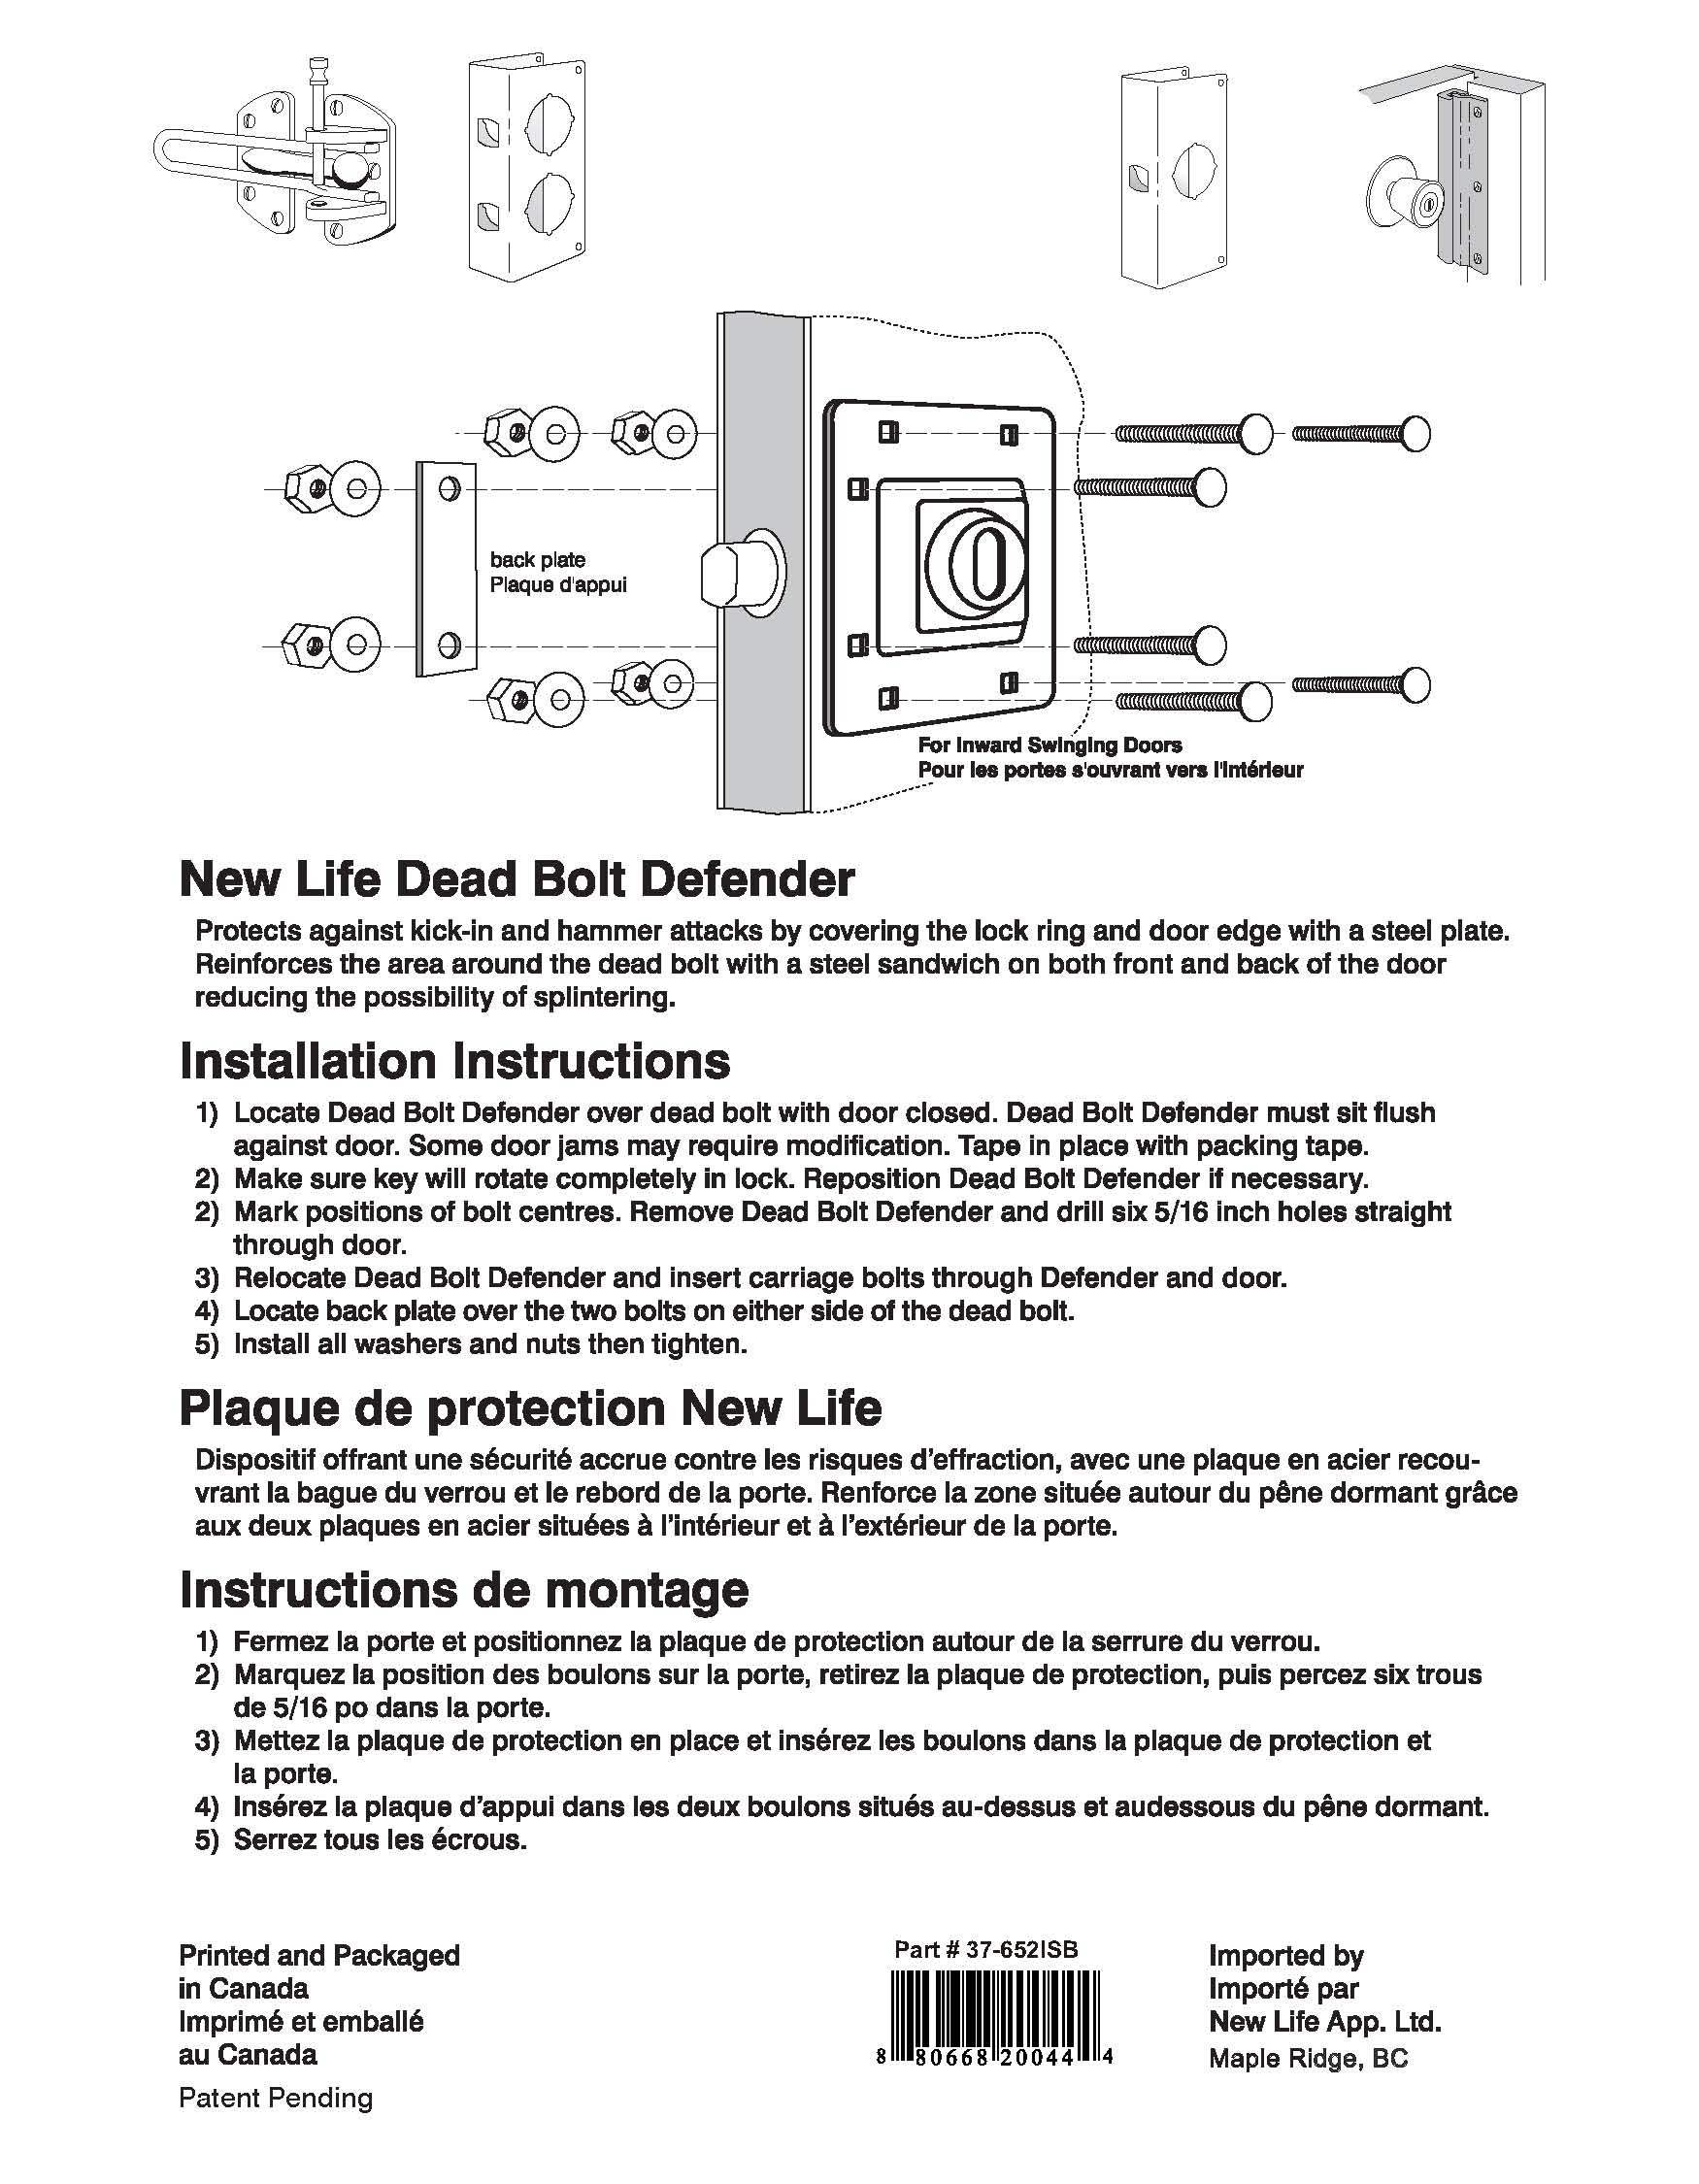 New Life Products 37-652ISB Door Deadbolt Defender, Latch Guard, Door Reinforcer 5 In X 5.8 In Inswing, Protects Inswinging door from forced entry, Replacement For Prime-Line Door Reinforcer U9496 by newlifeapp (Image #2)